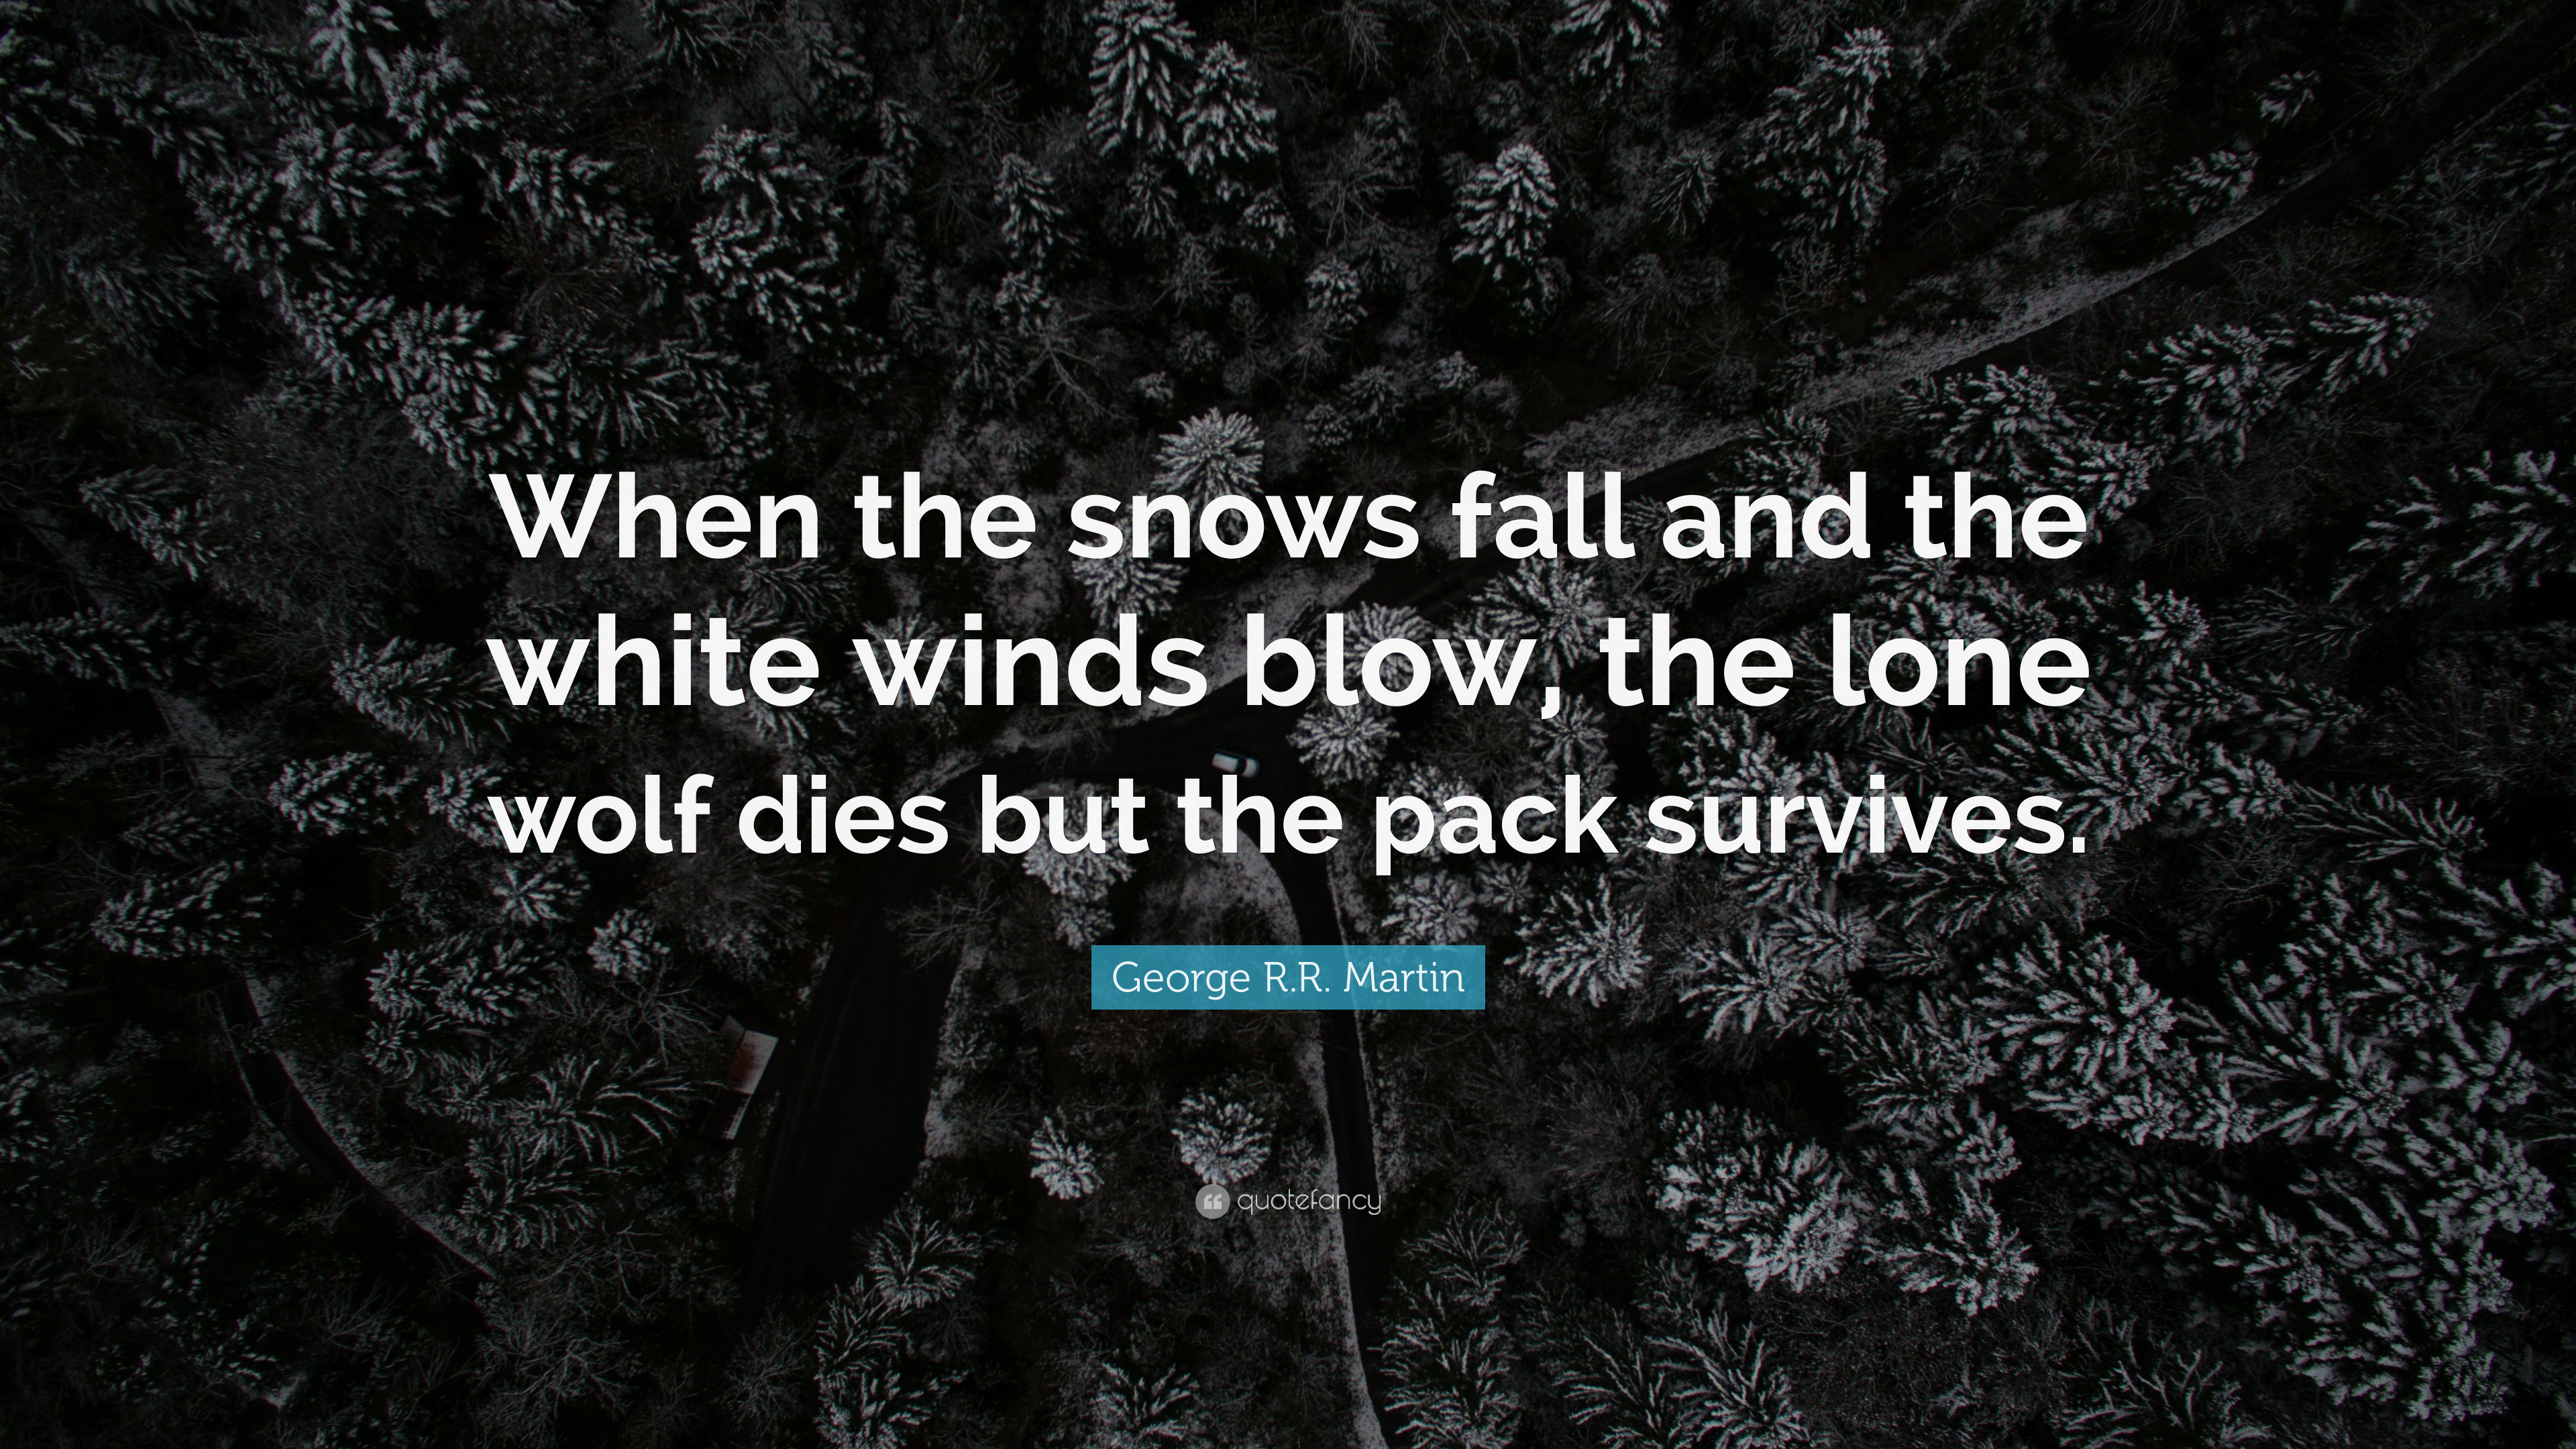 Malcolm X Wallpaper Quotes George R R Martin Quote When The Snows Fall And The